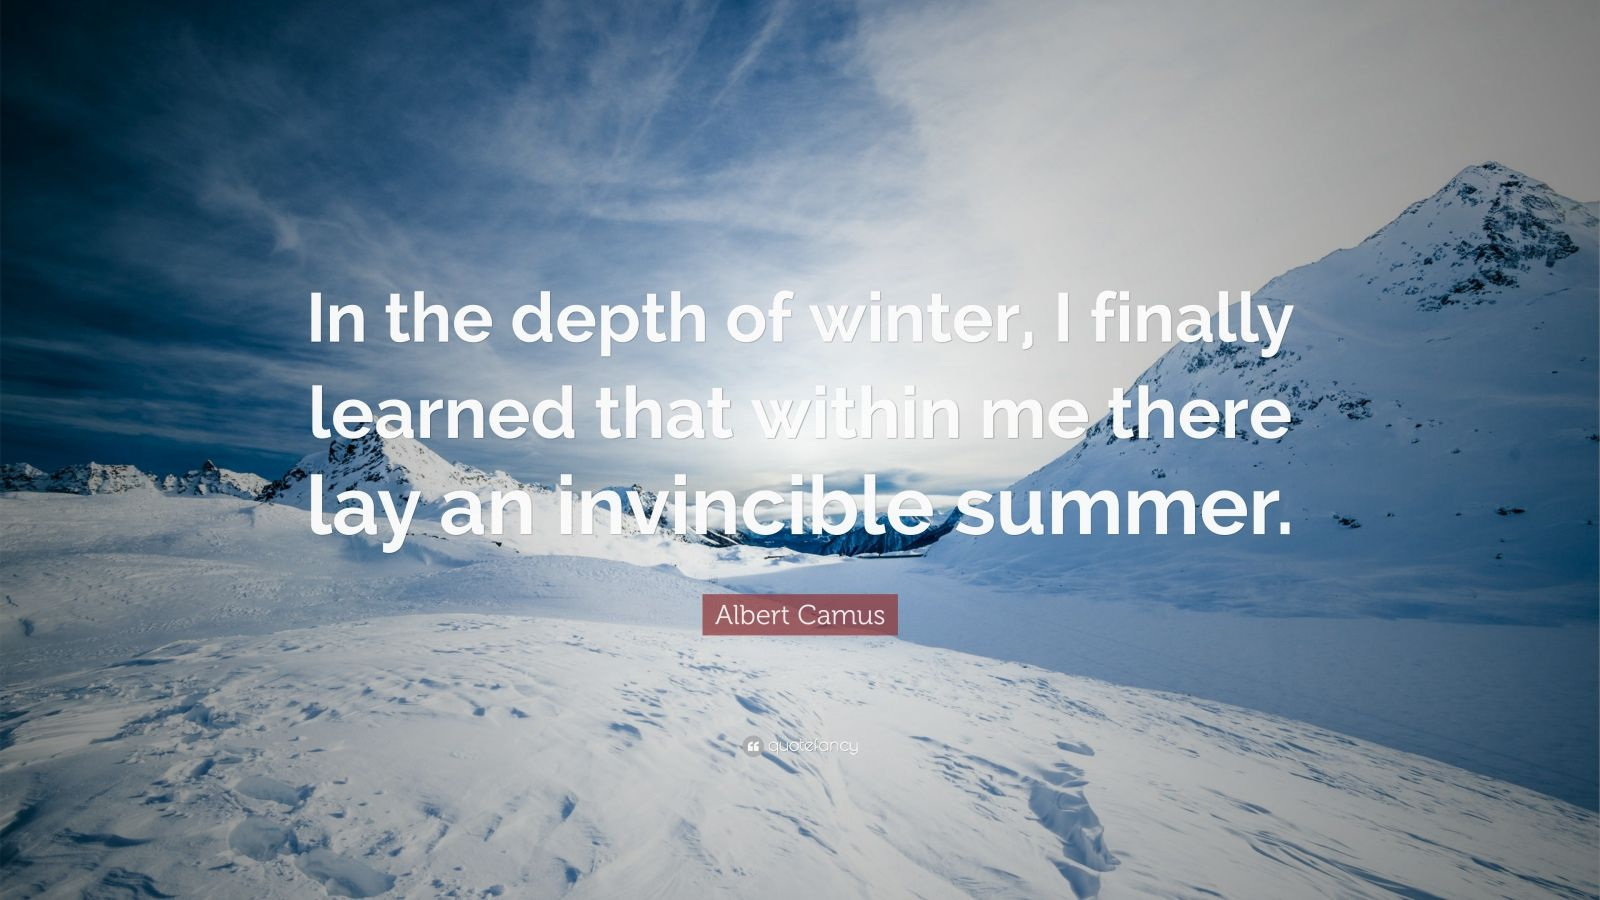 Life Quotes In The Depth Of Winter I Finally Learned That Within Me